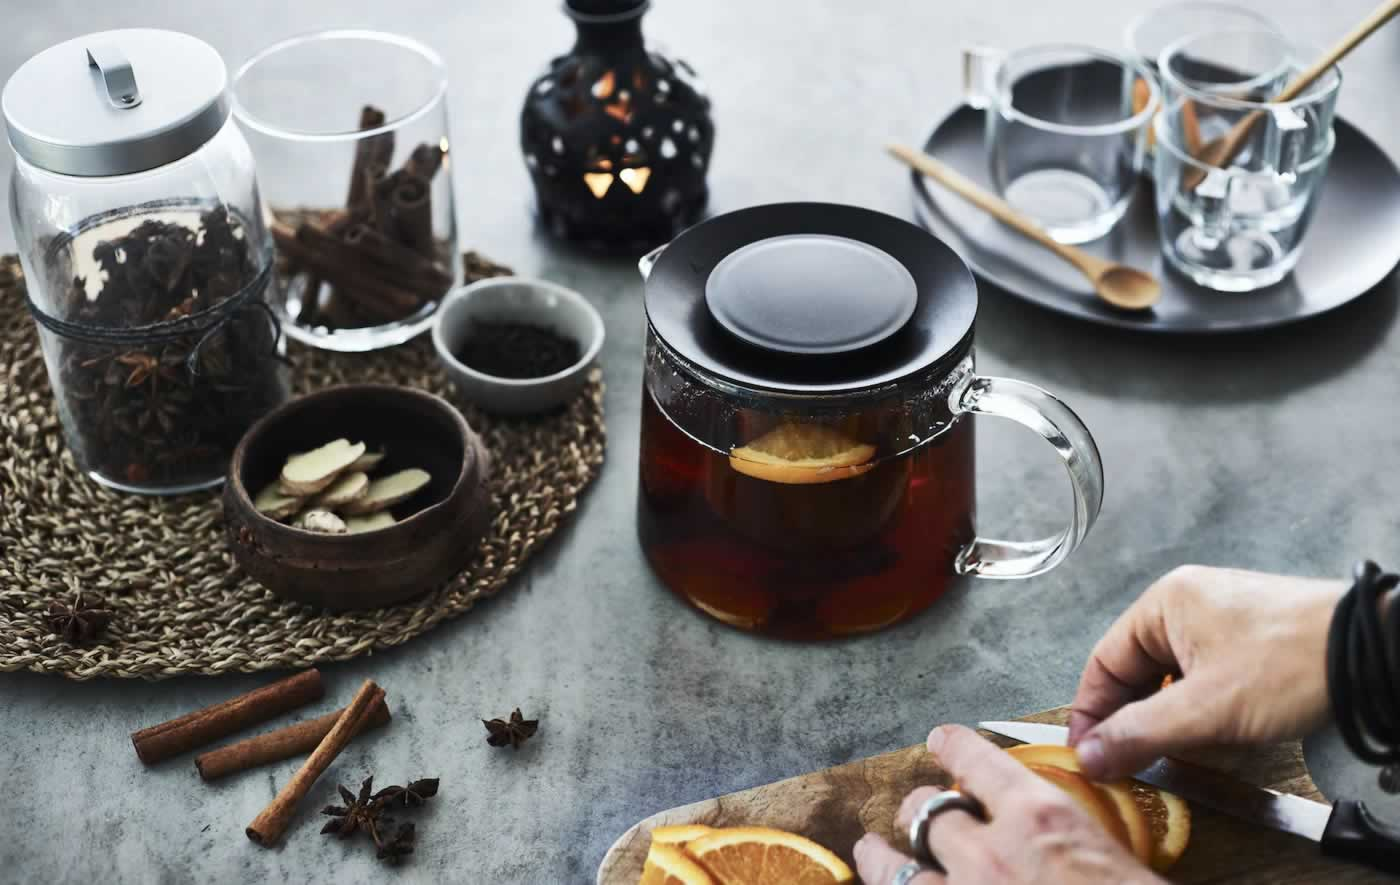 IKEA Ideas - Brew a warming festive tea